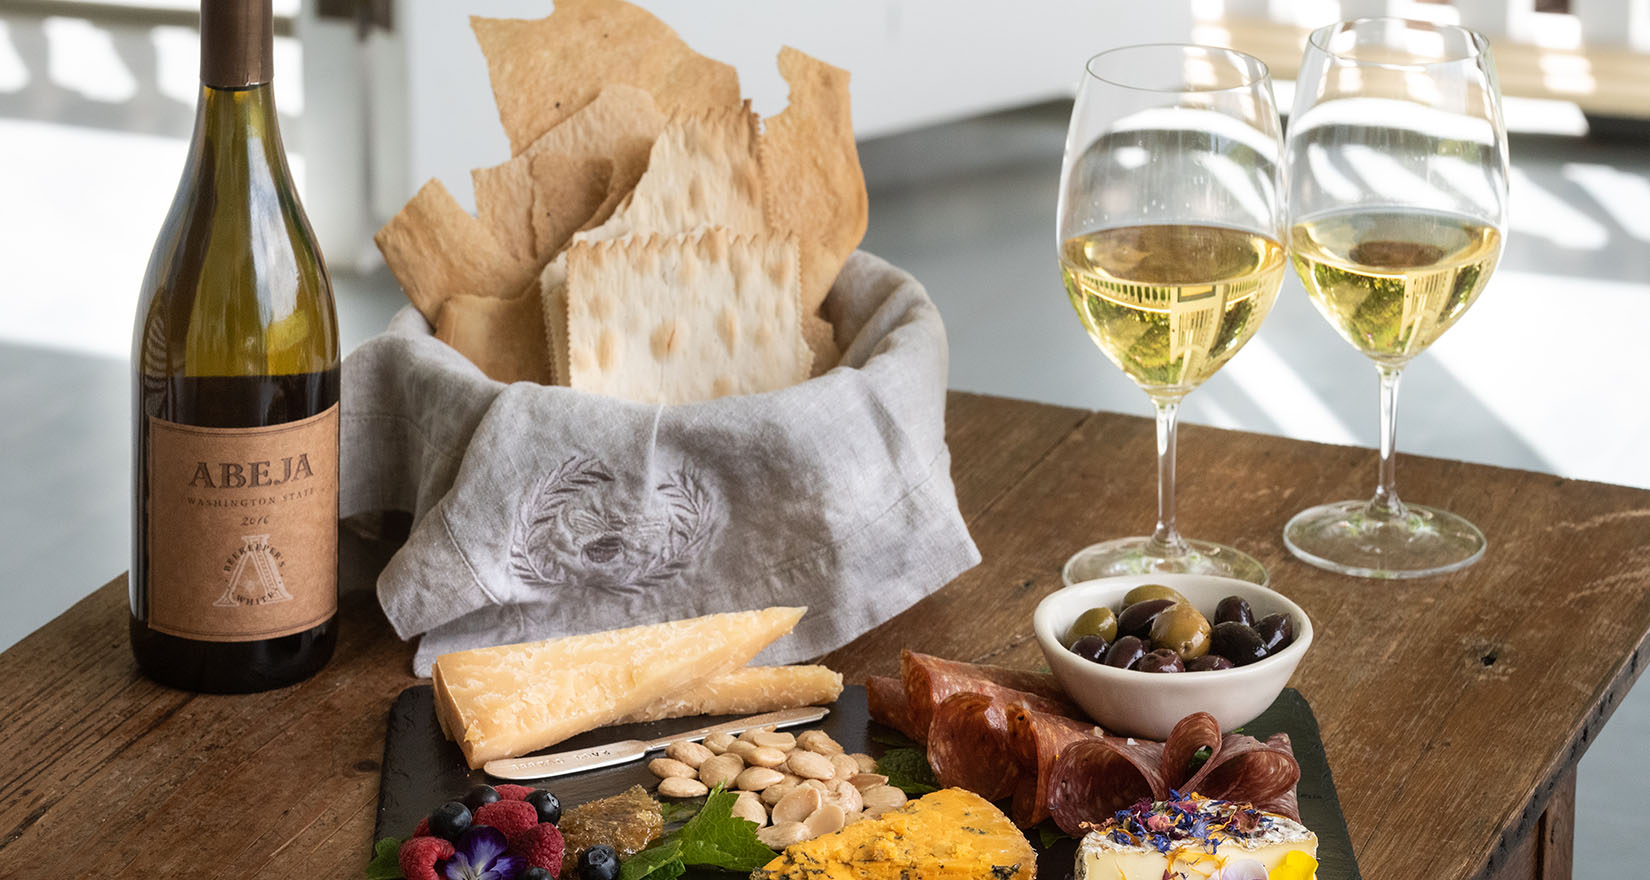 White wine and cheese plate